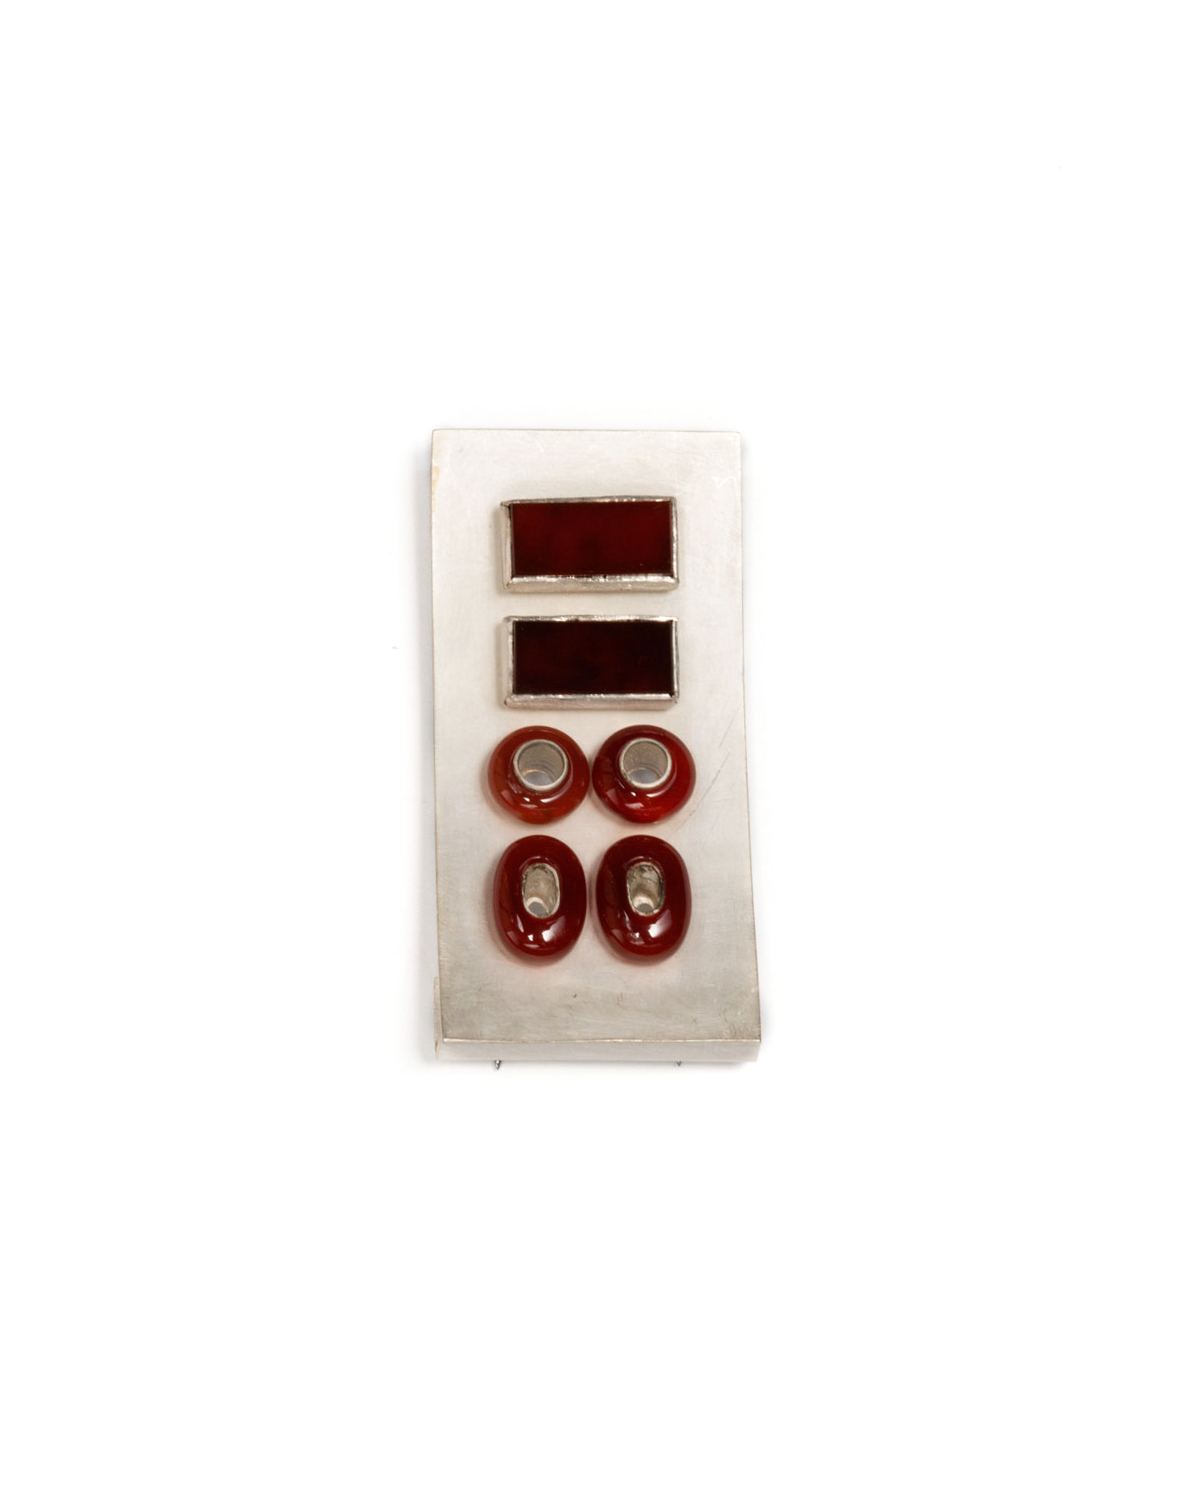 Winfried Krüger, untitled, 2003, brooch; silver, carnelian, 65 x 35 mm, €2180